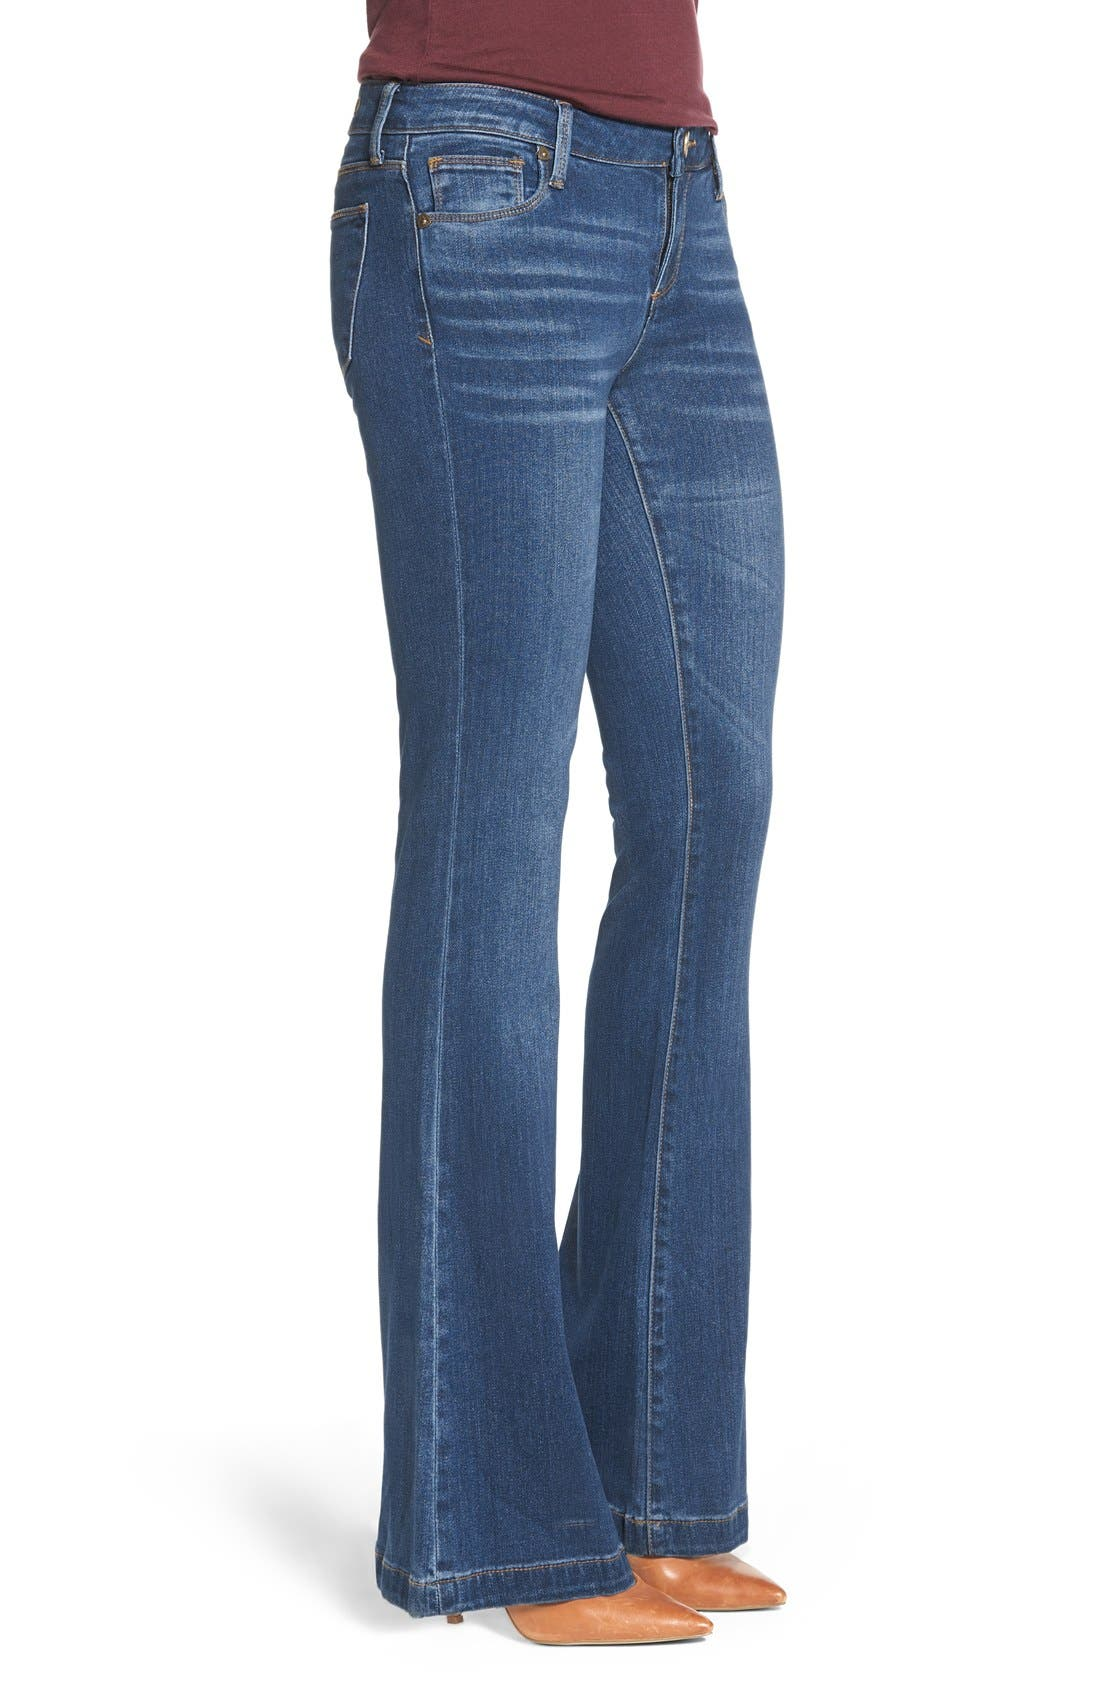 Alternate Image 3  - KUT from the Kloth 'Chrissy' Stretch Flare Leg Jeans (Inclusion)